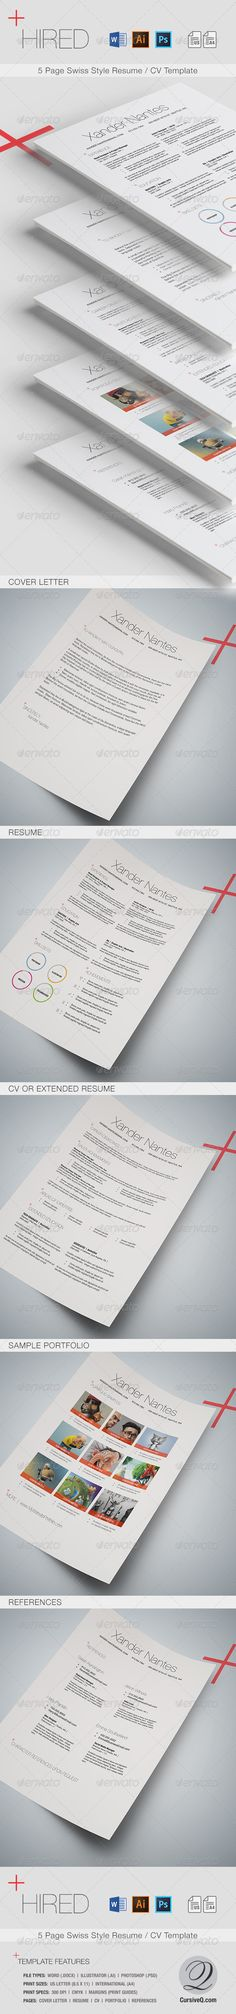 extended resume template